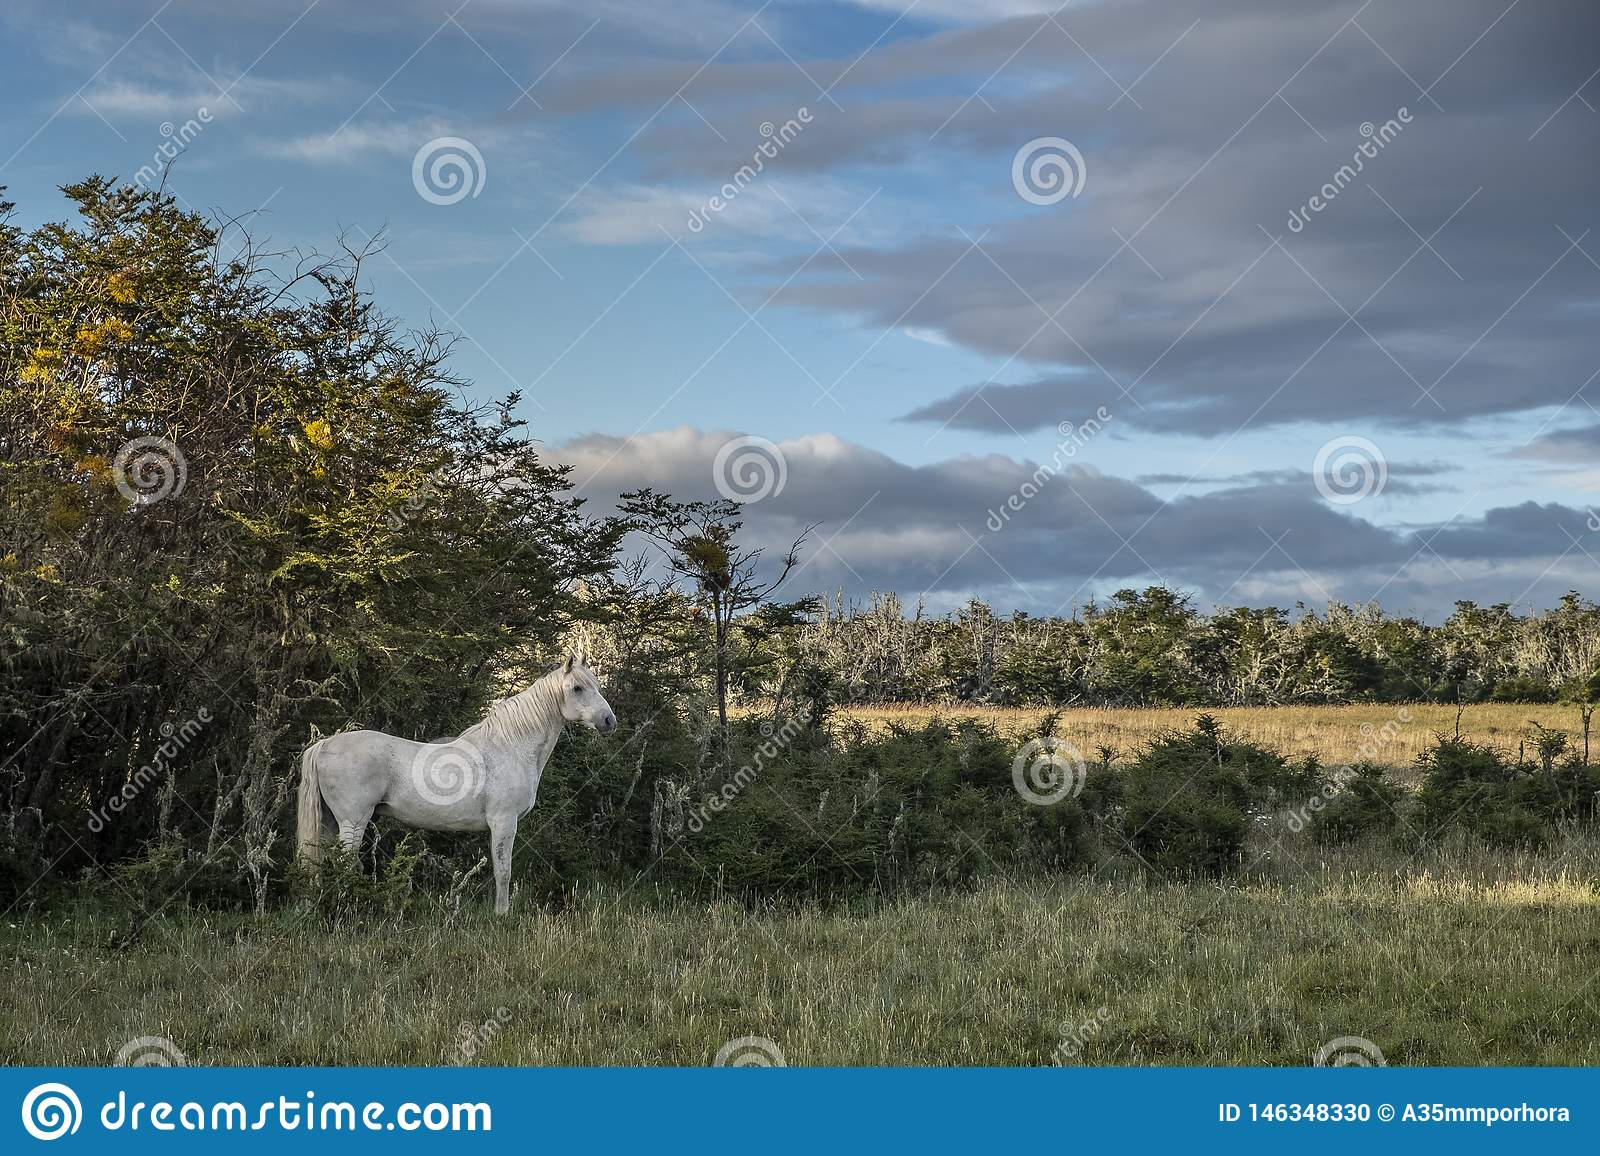 White horse alone in the middle of the field.